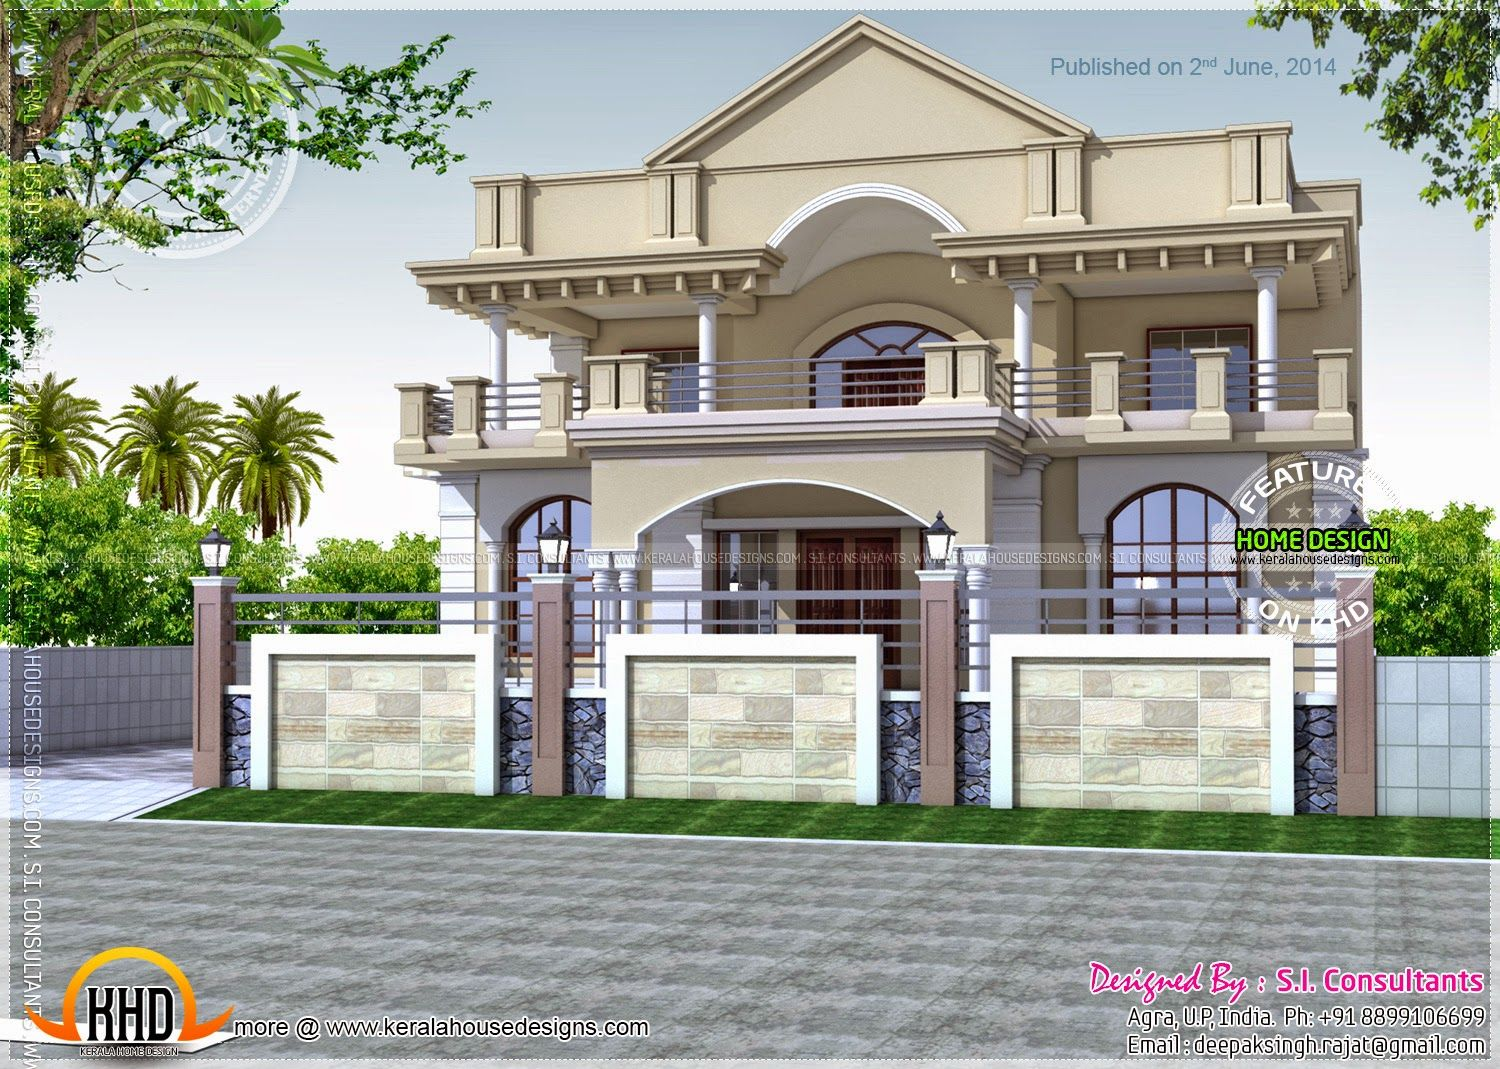 Exterior Decoration India